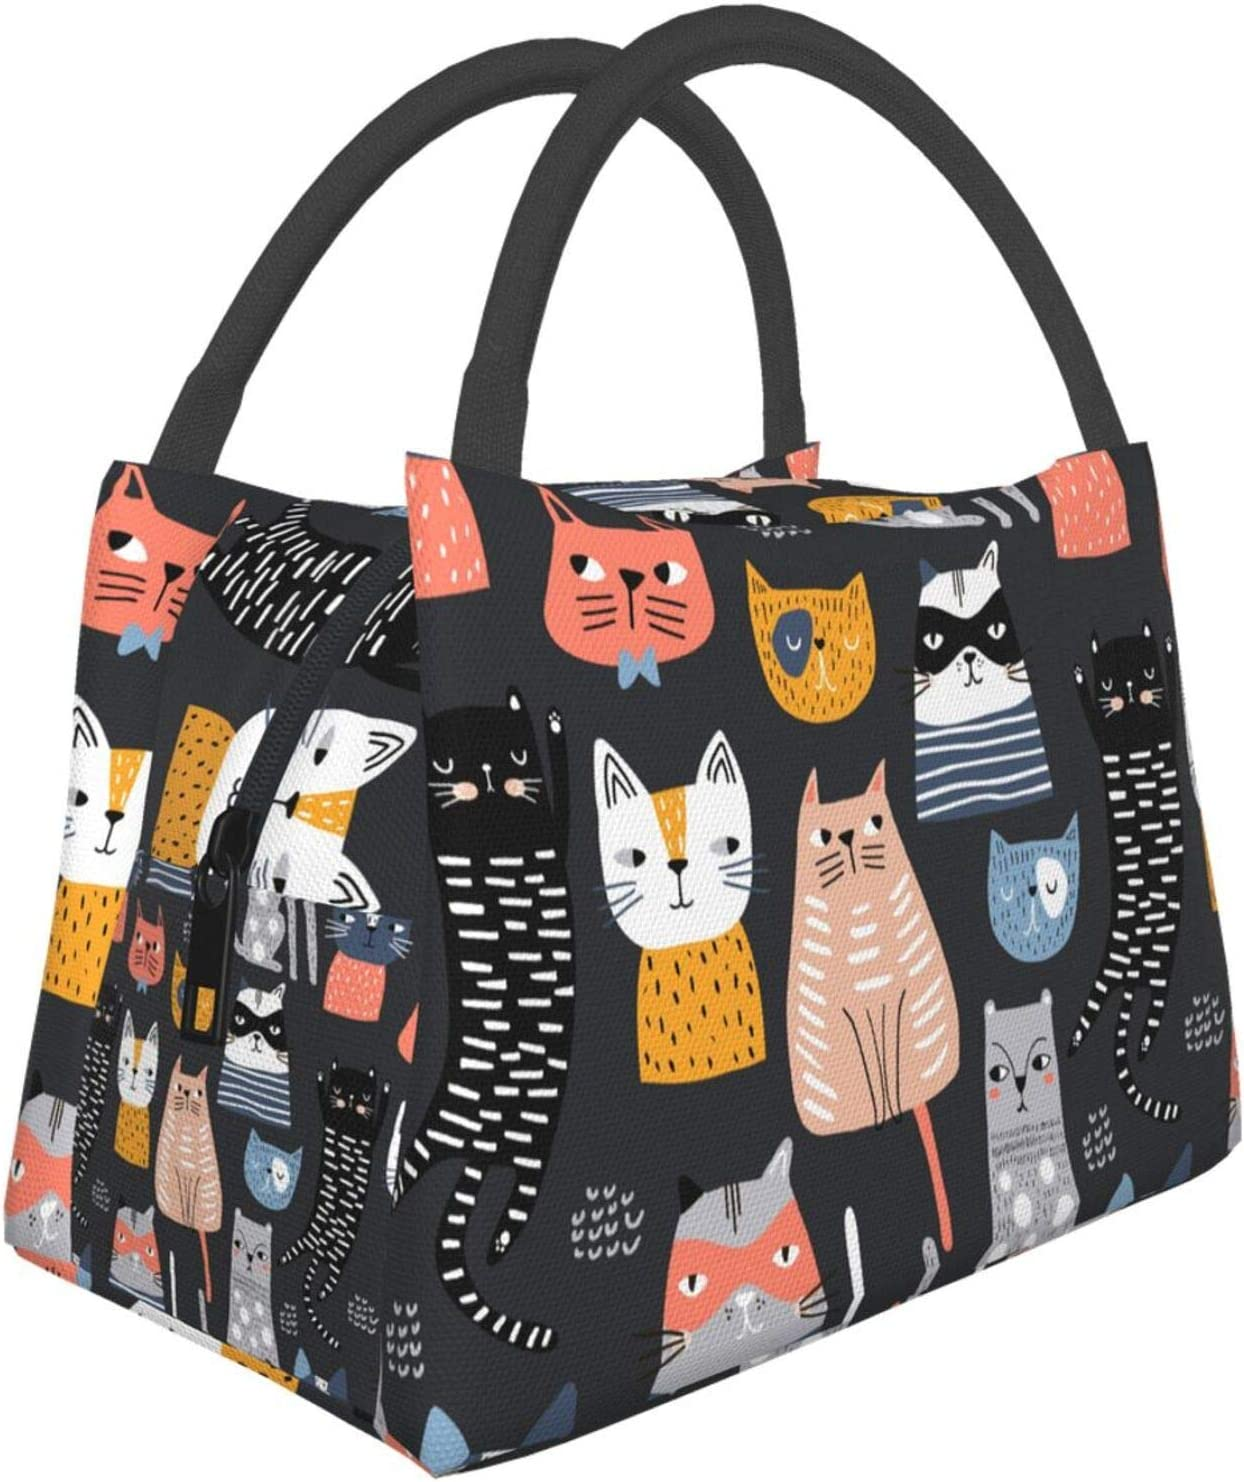 CUAJH Women's Cute Cat Insulated Thermal Popular popular Lunch Tote Reusable Bag Ranking TOP15